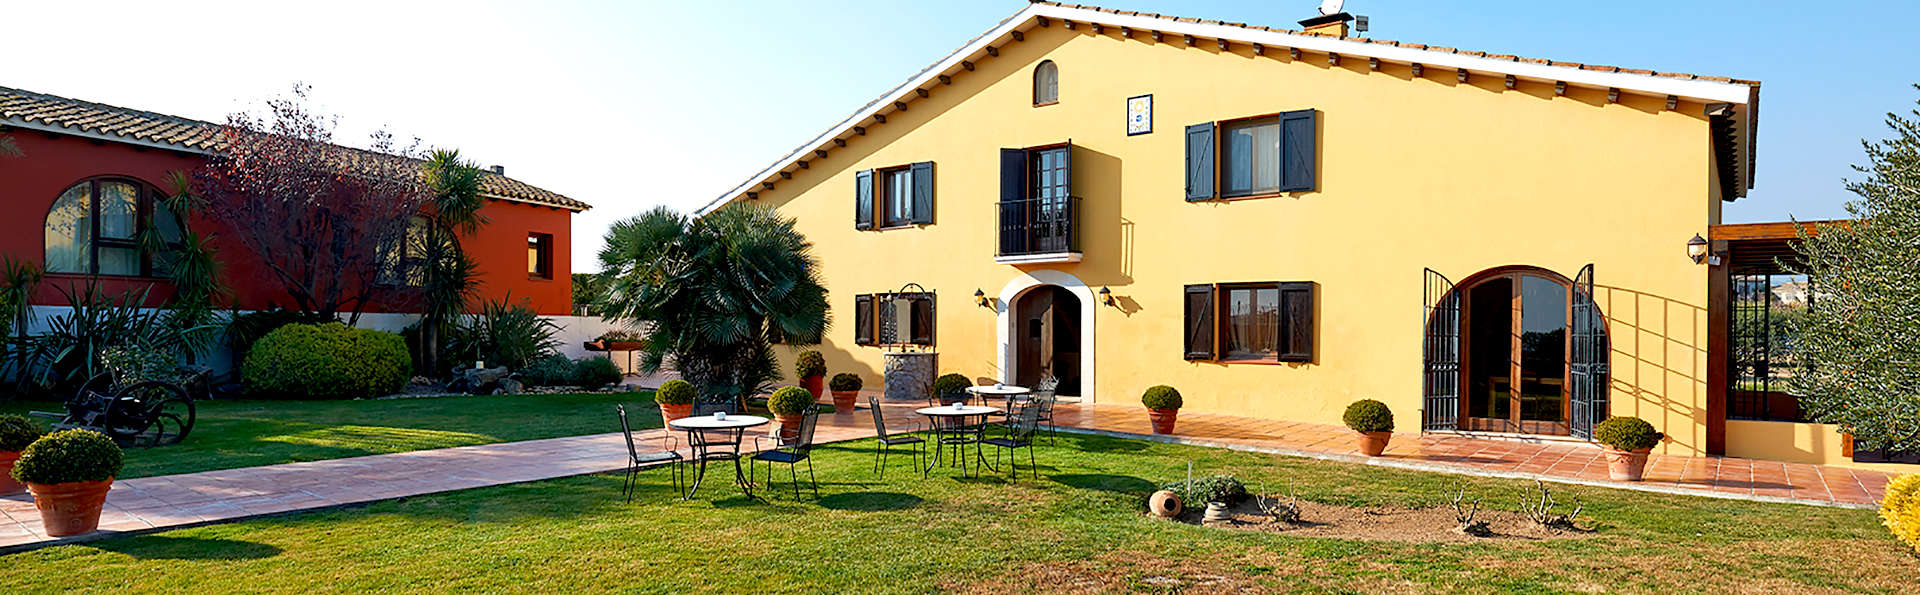 Hotel Rural Cal Ruget (Adults Only) - Edit_Front3.jpg